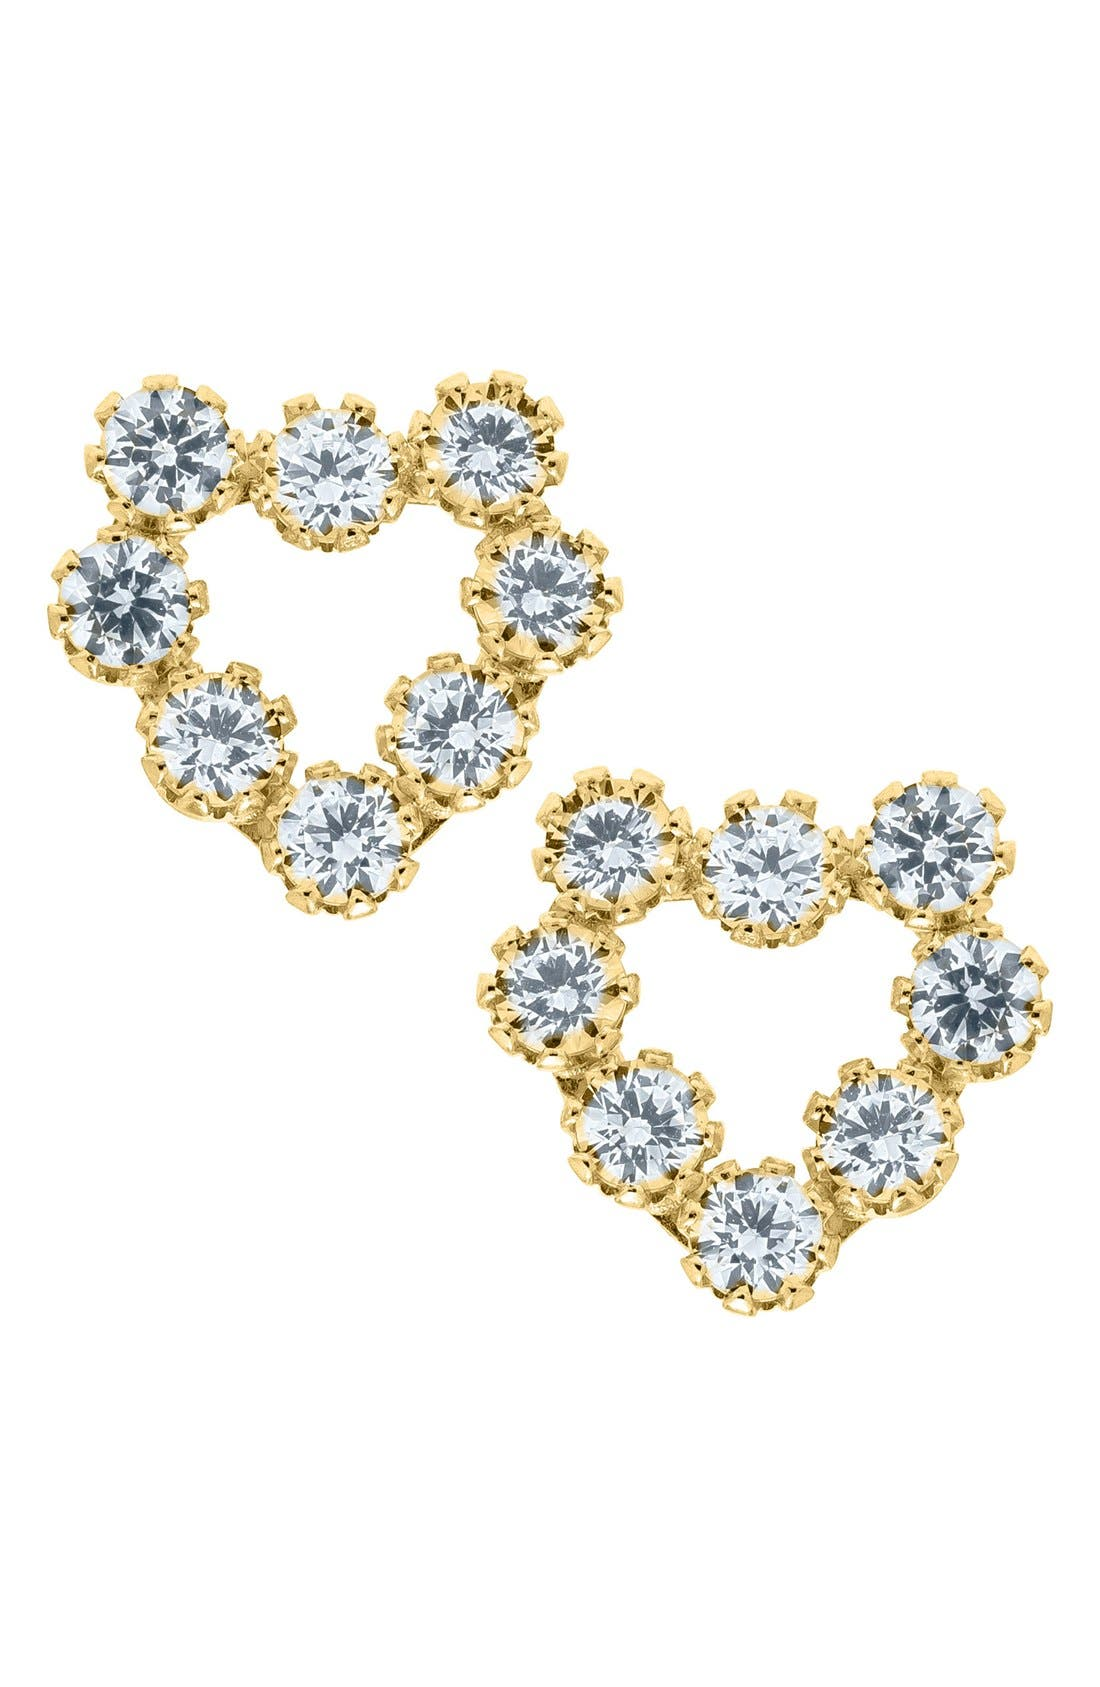 MIGNONETTE 14k Gold & Cubic Zirconia Heart Earrings